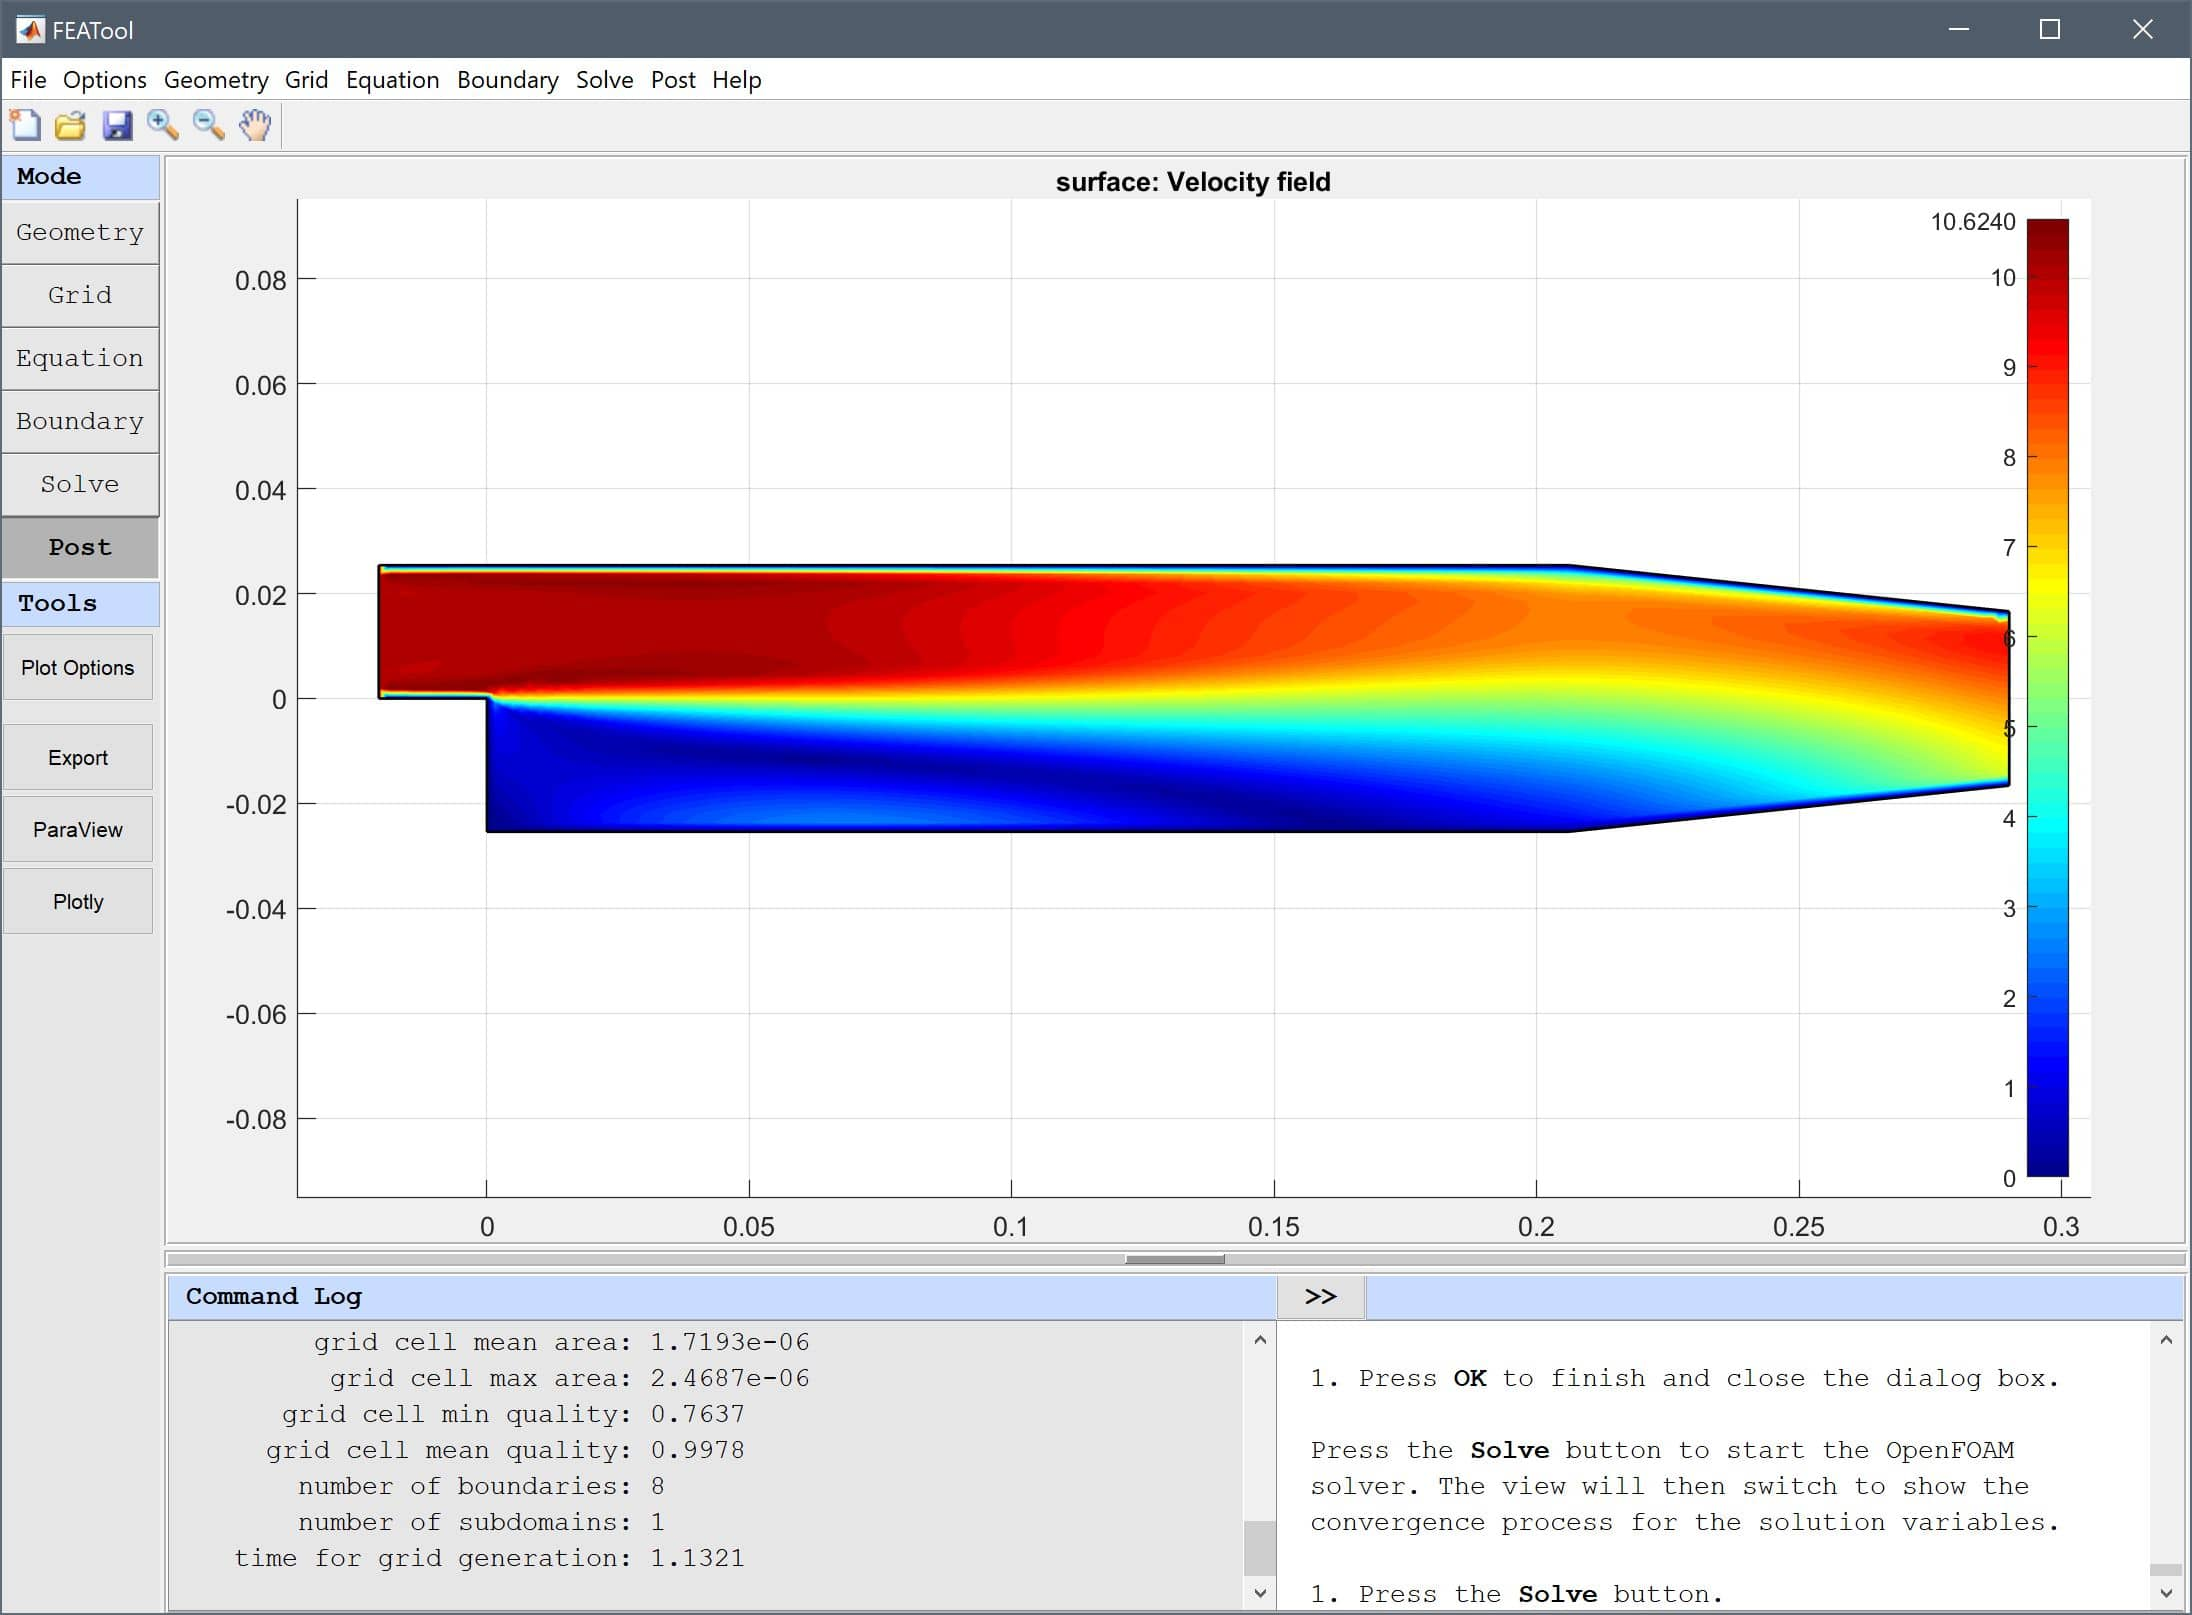 FEATool Multiphysics Tutorial - Using OpenFOAM to Simulate Turbulent Flow Over a Backwards Facing Step